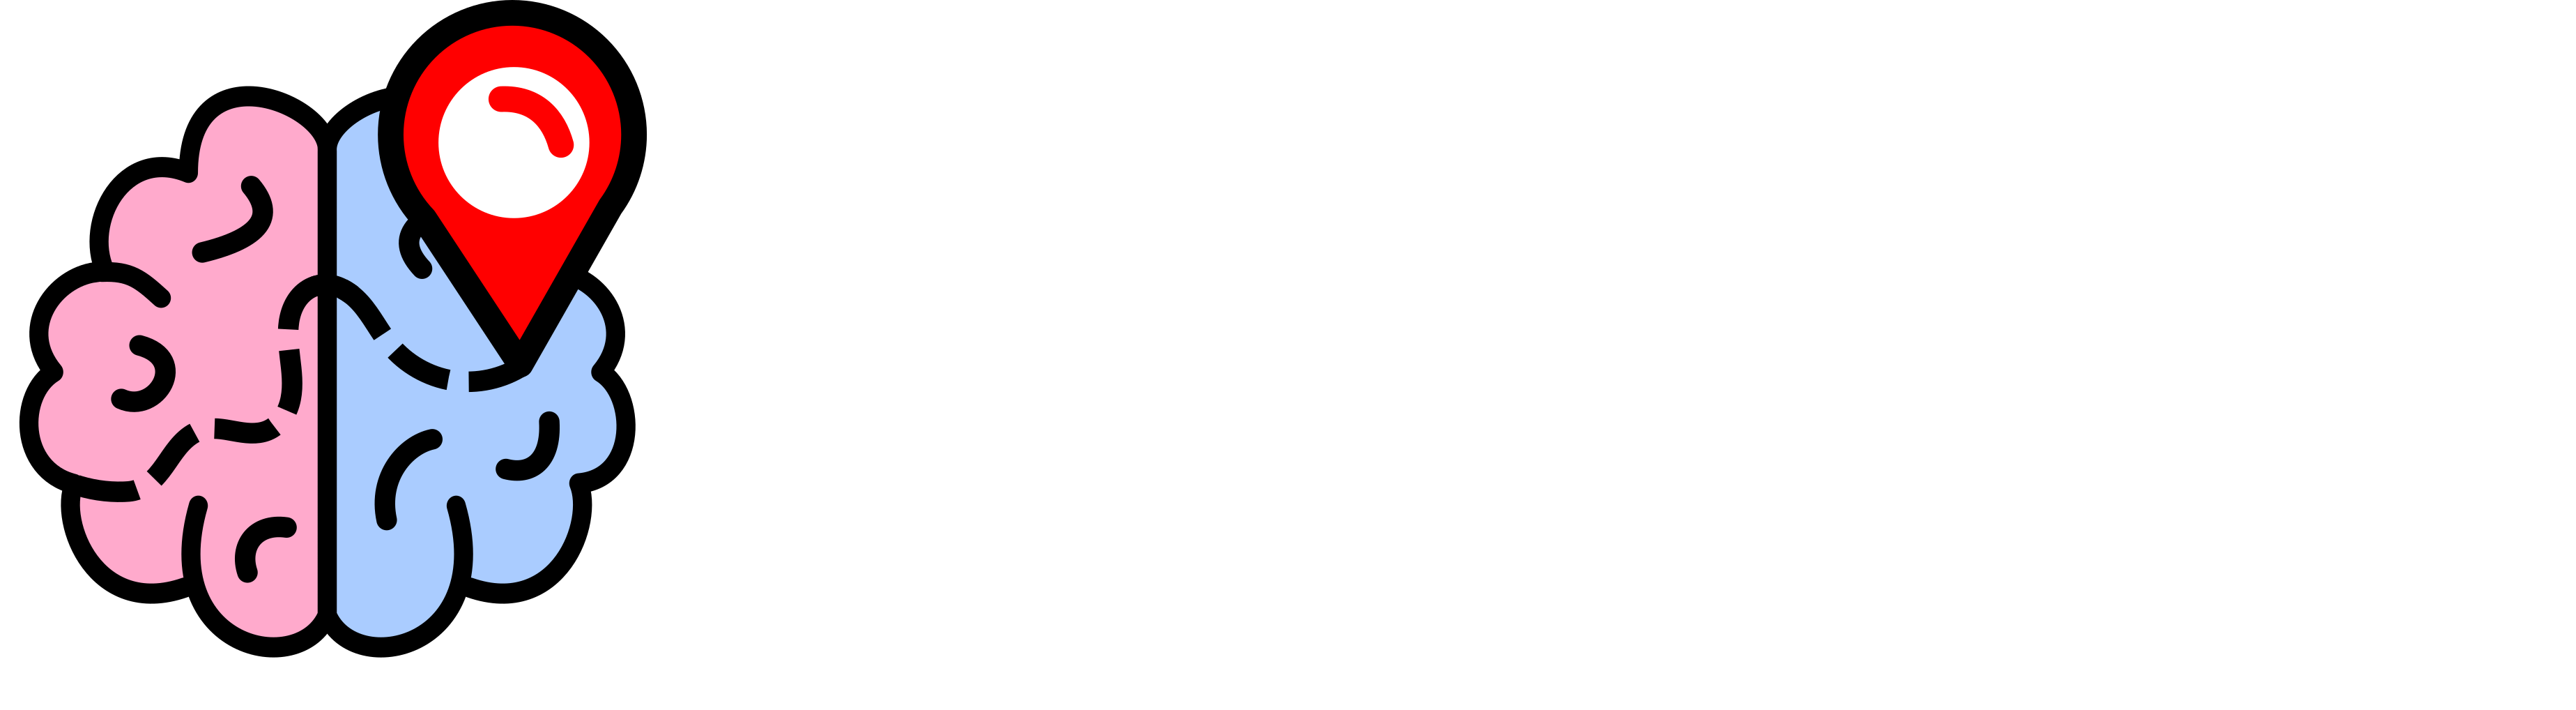 The Journey of a Wandering Mind